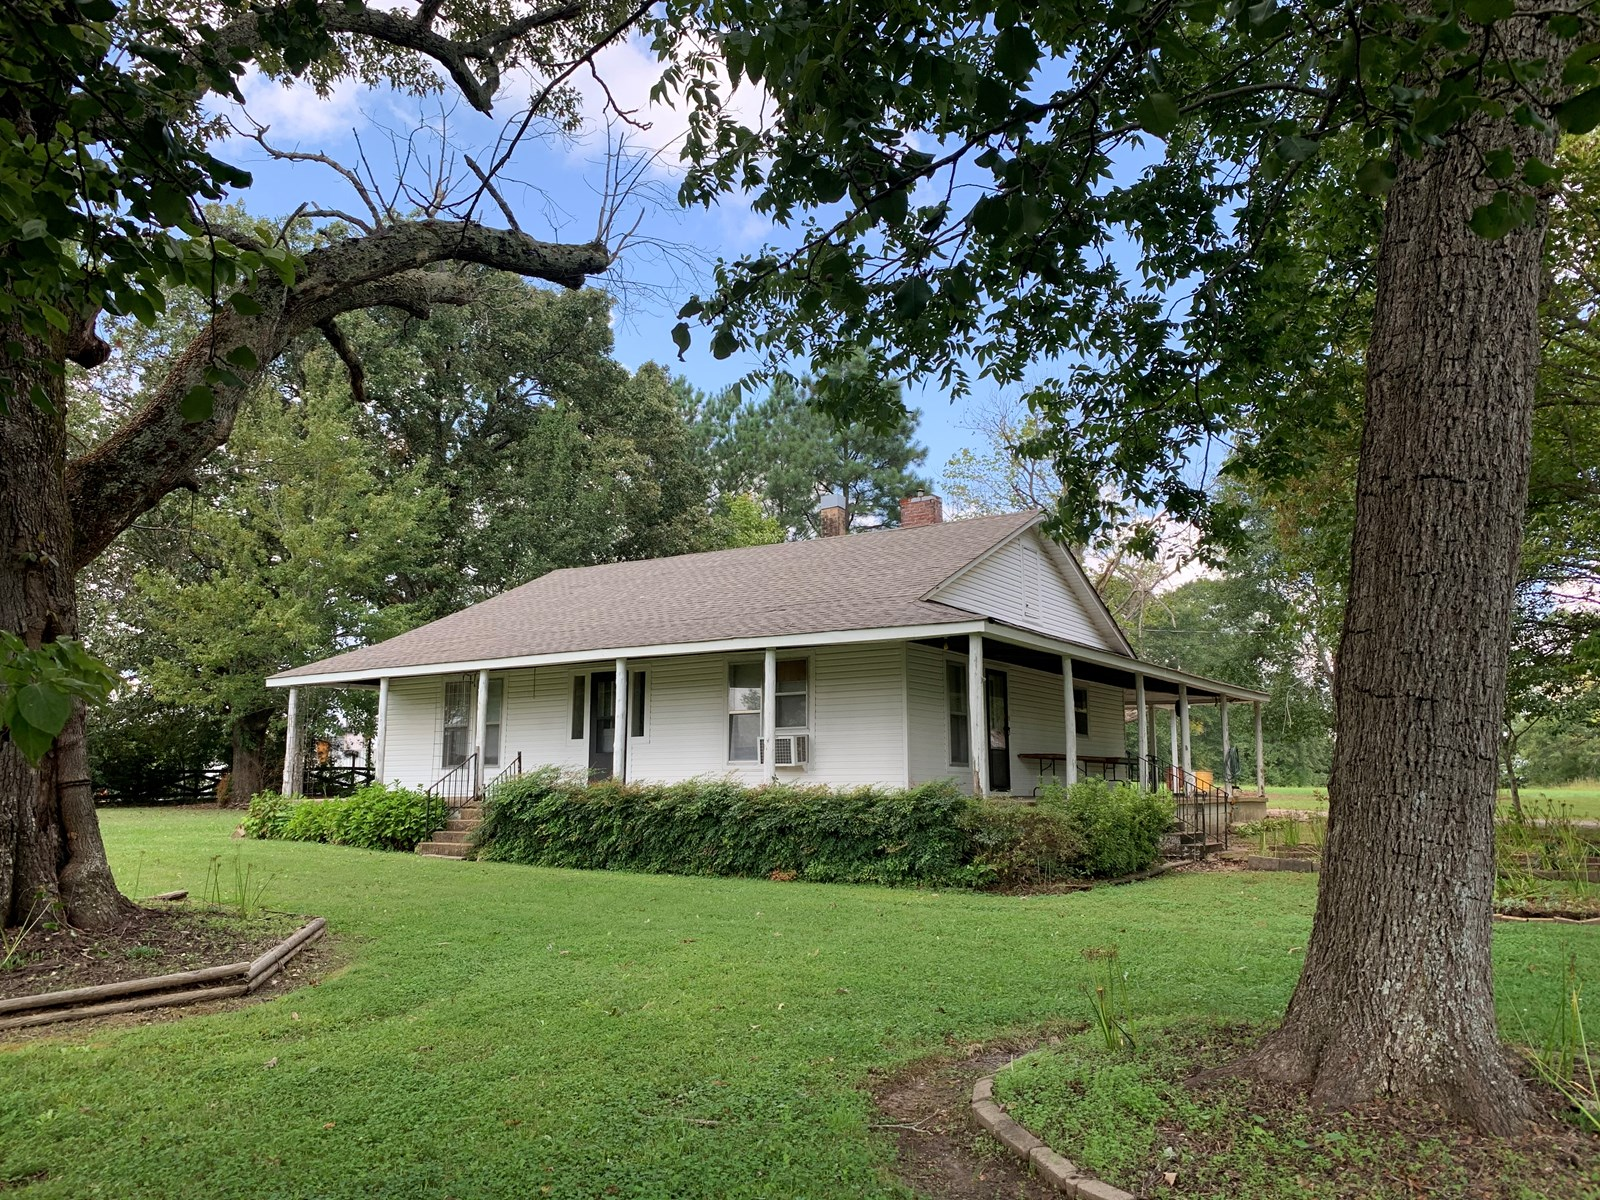 PRIME COMMERCIAL PROPERTY CLOSE TO TN RIVER WITH HOME